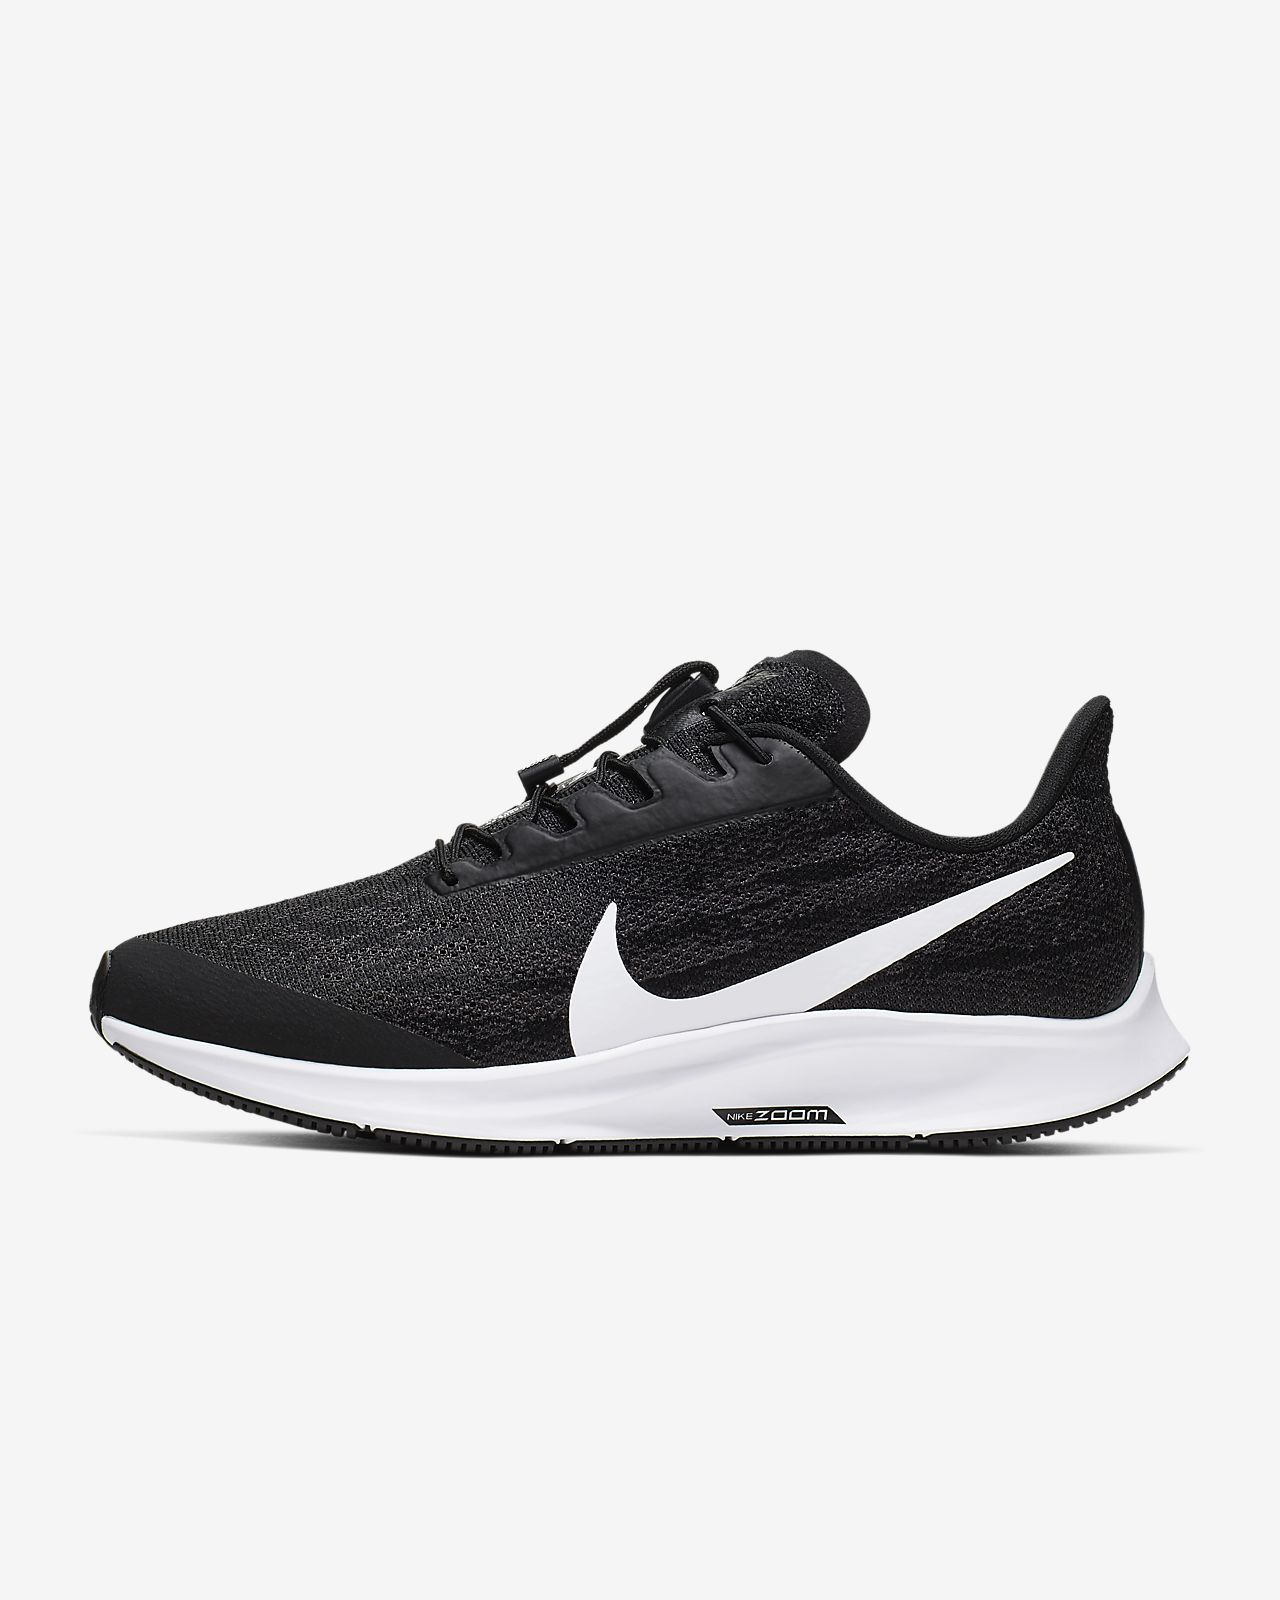 Chaussure de running Nike Air Zoom Pegasus 36 FlyEase pour Femme (large)